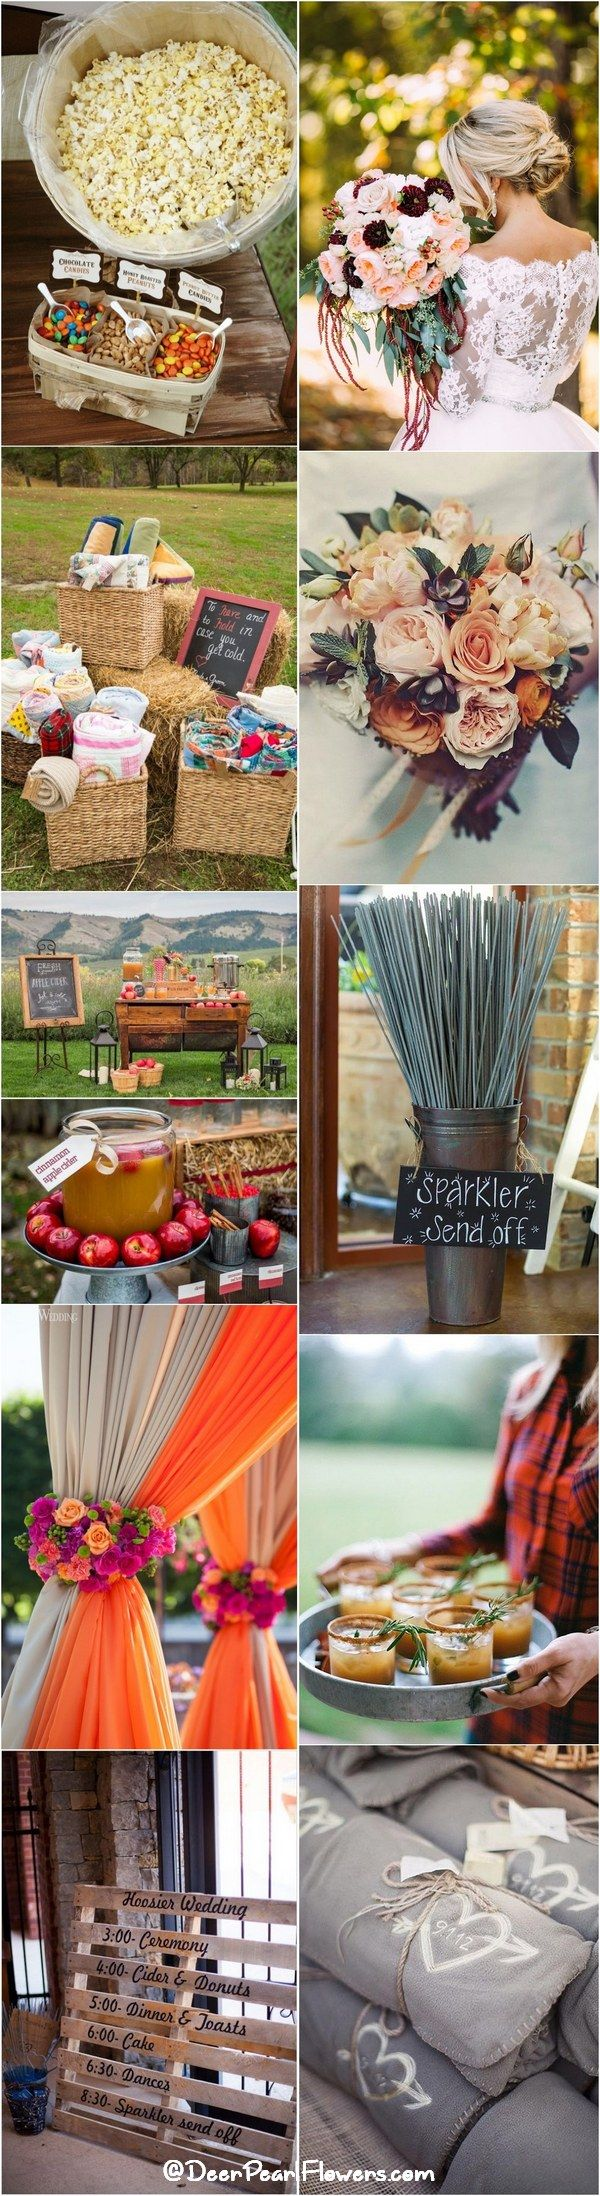 25 Beautiful Fun Fall Wedding Ideas Country Fallwedding Rusticfall